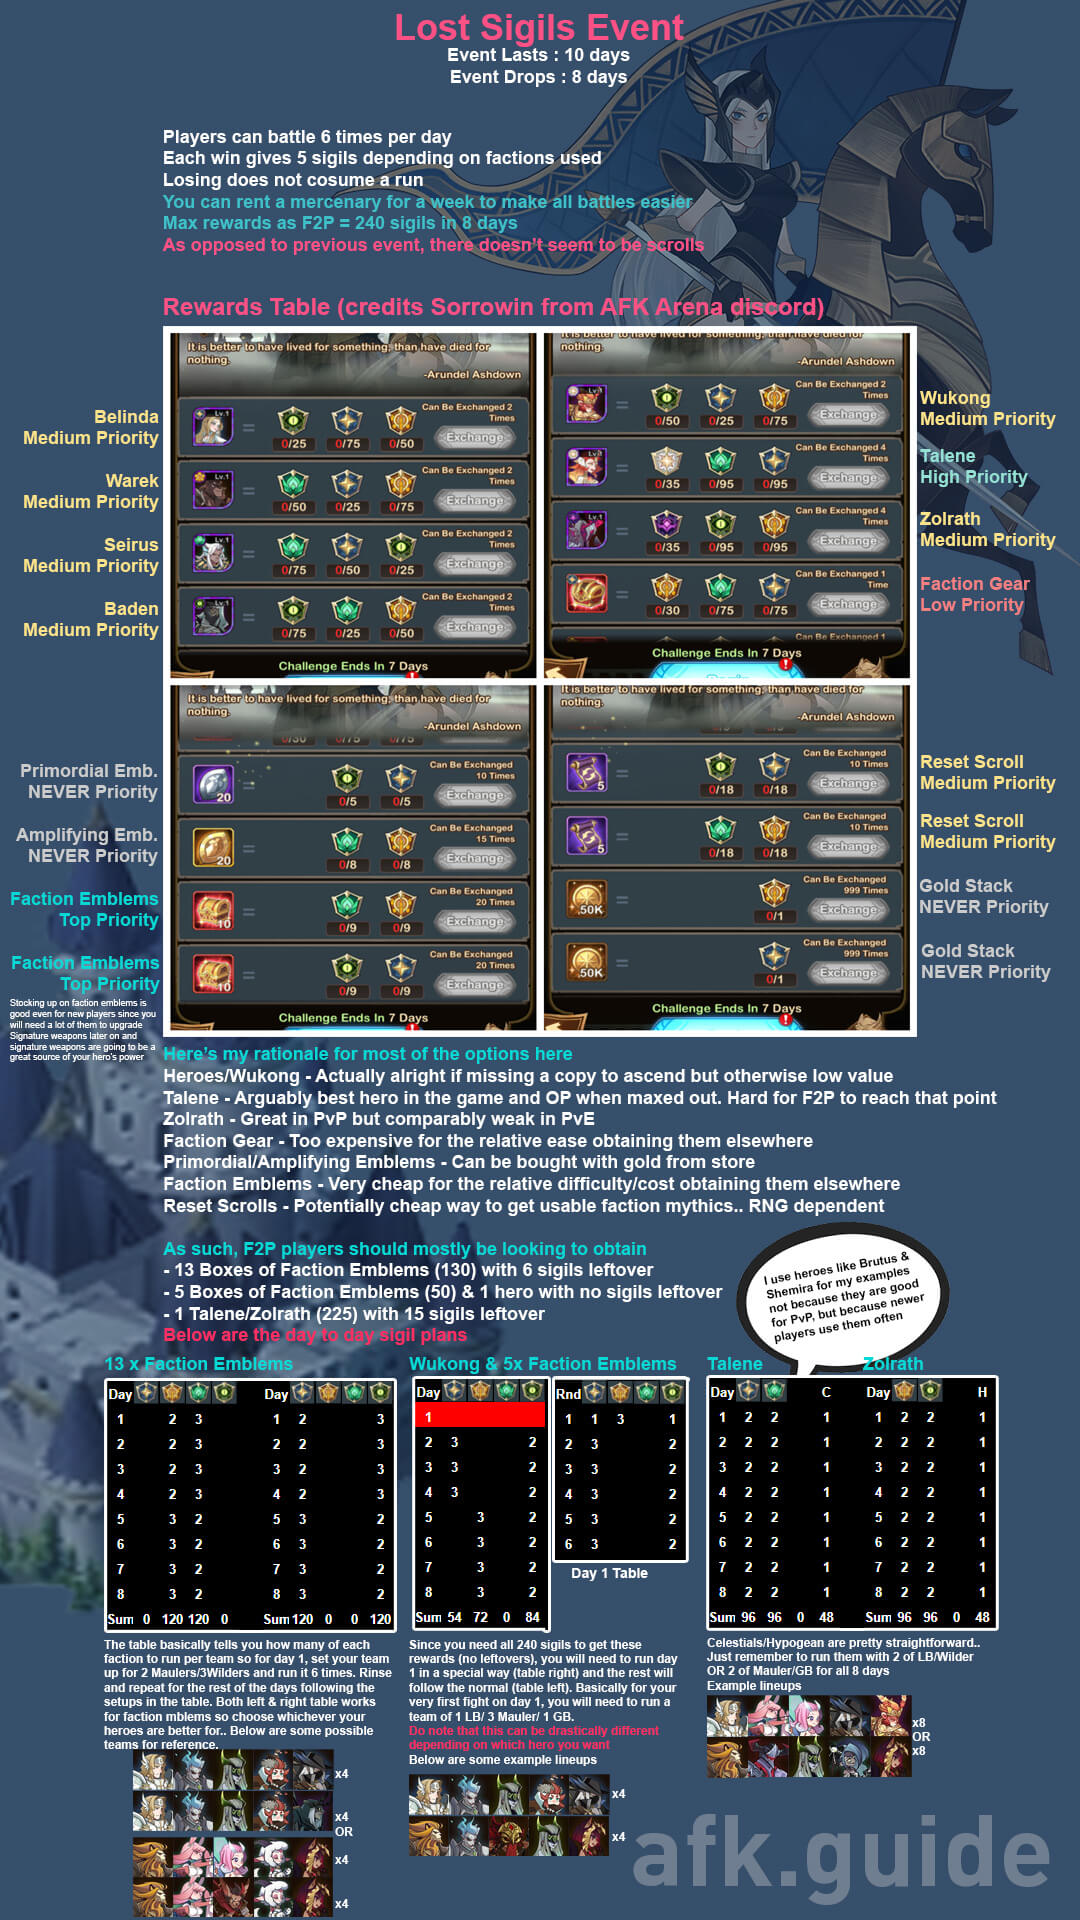 lost sigils guide infographic